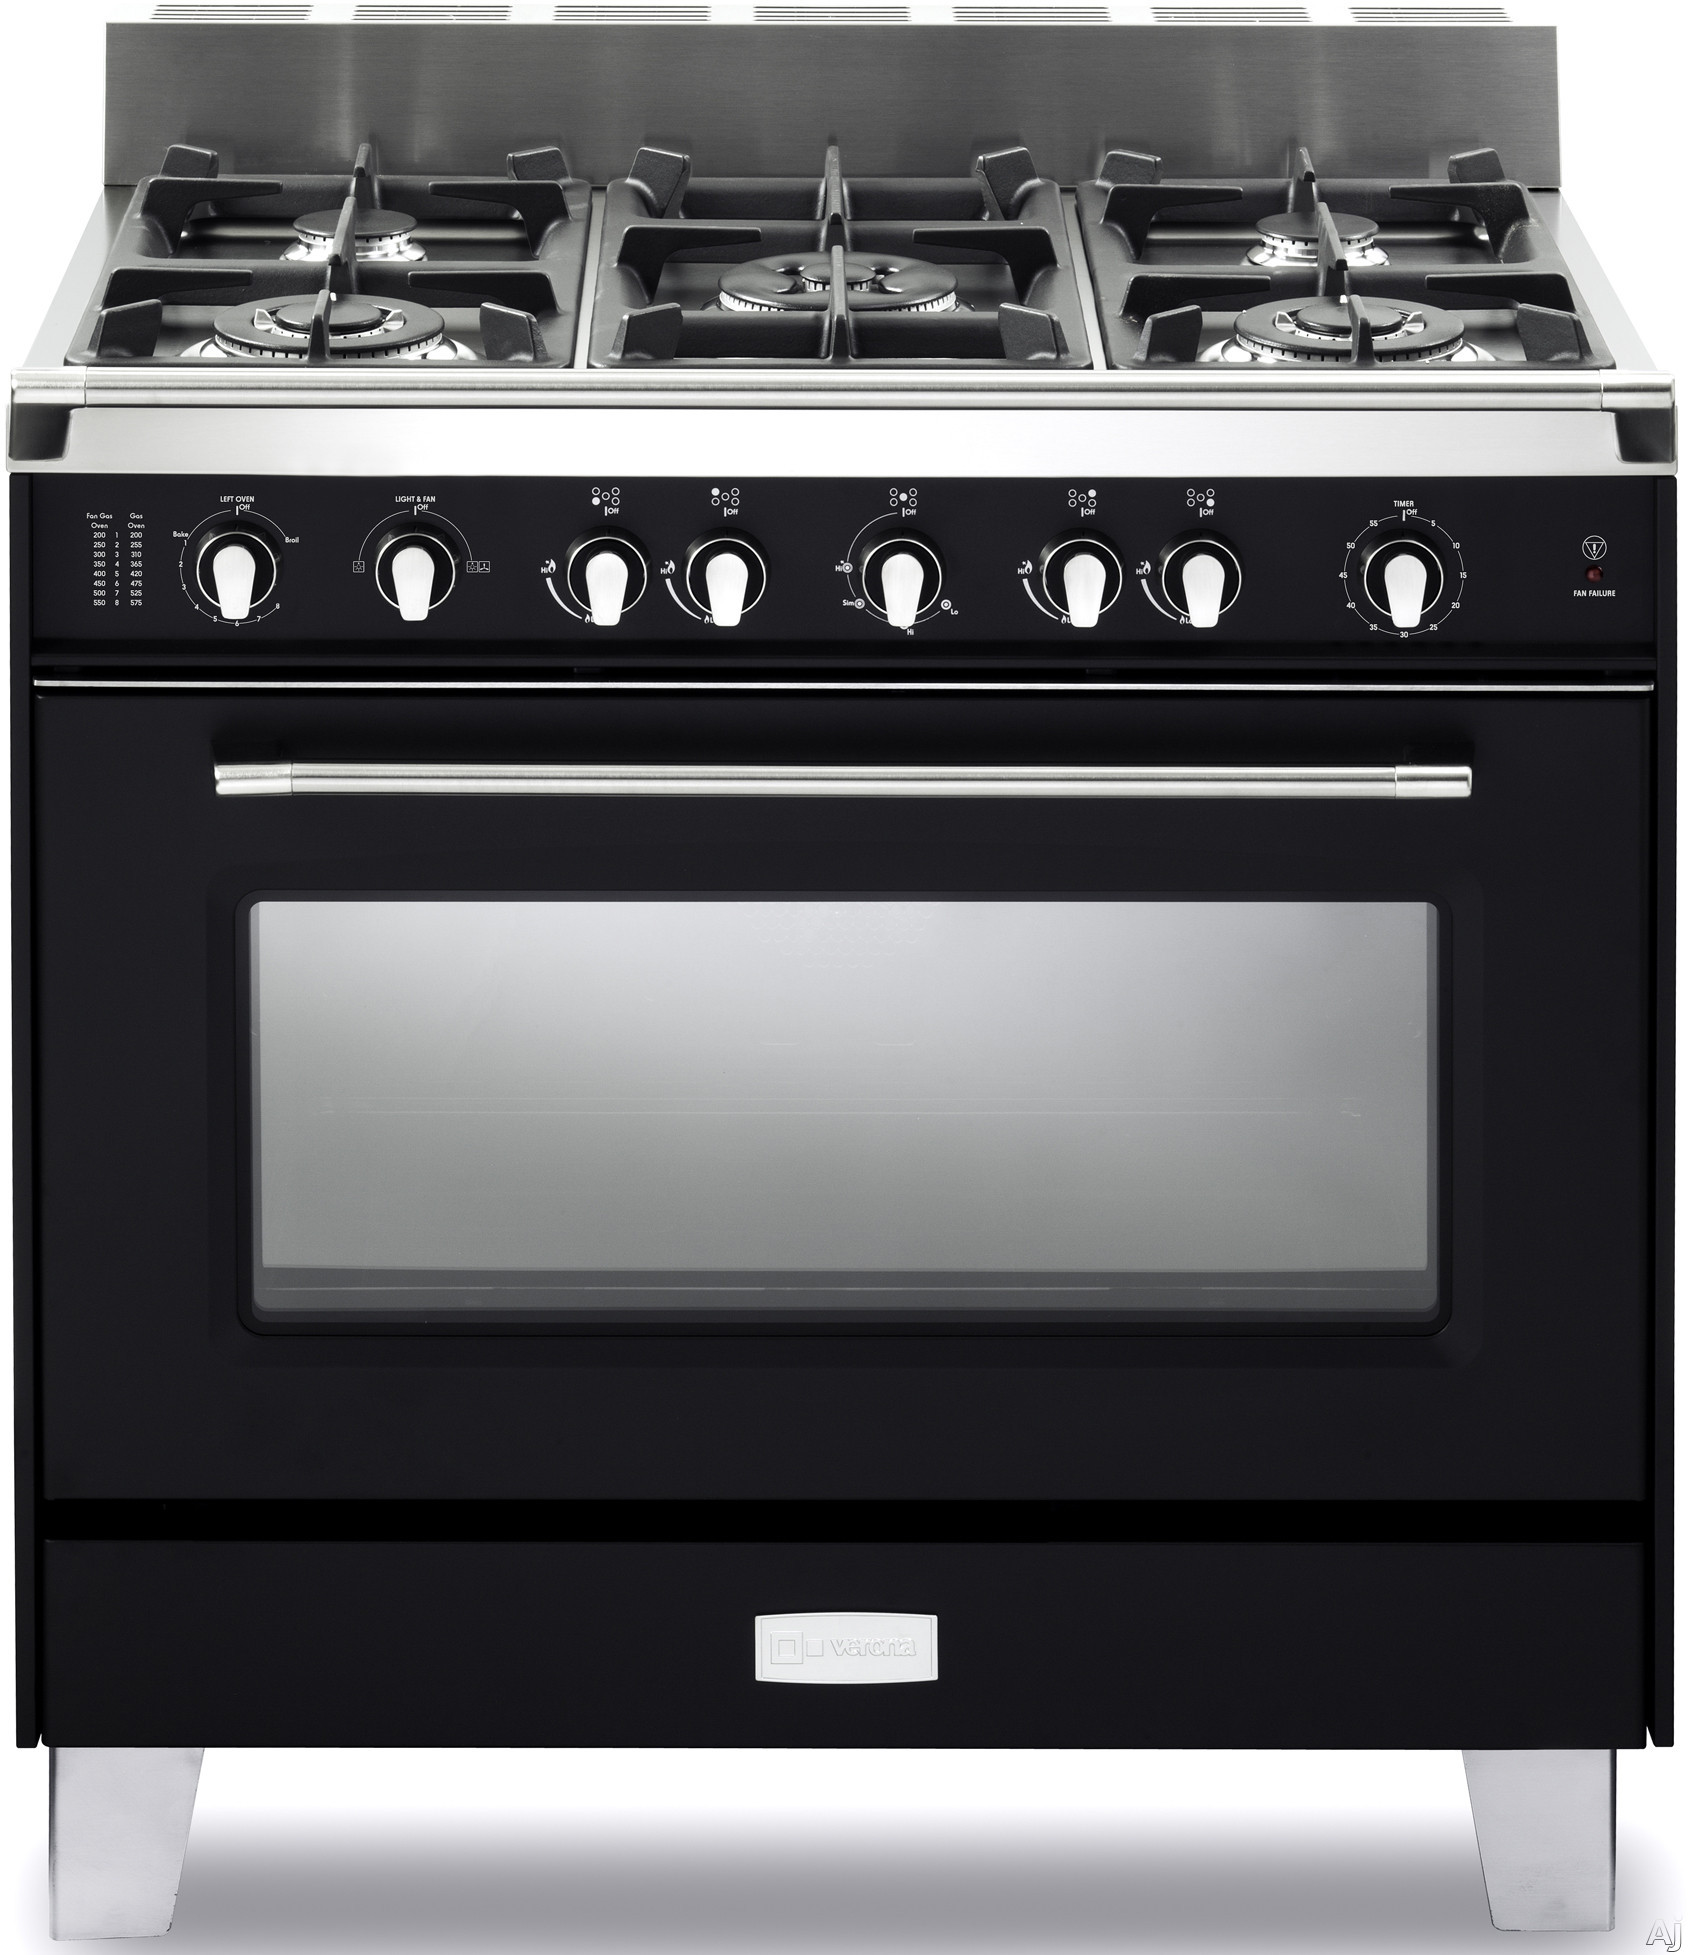 Verona Classic Series VCLFSGG365DE 36 Inch Pro-Style Gas Range with 4 cu. ft. Total Oven Capacity, 5 Sealed Burners, Convection Main Oven, Infrared Broiler, Bell Timer, Glide Rack and Storage Drawer: